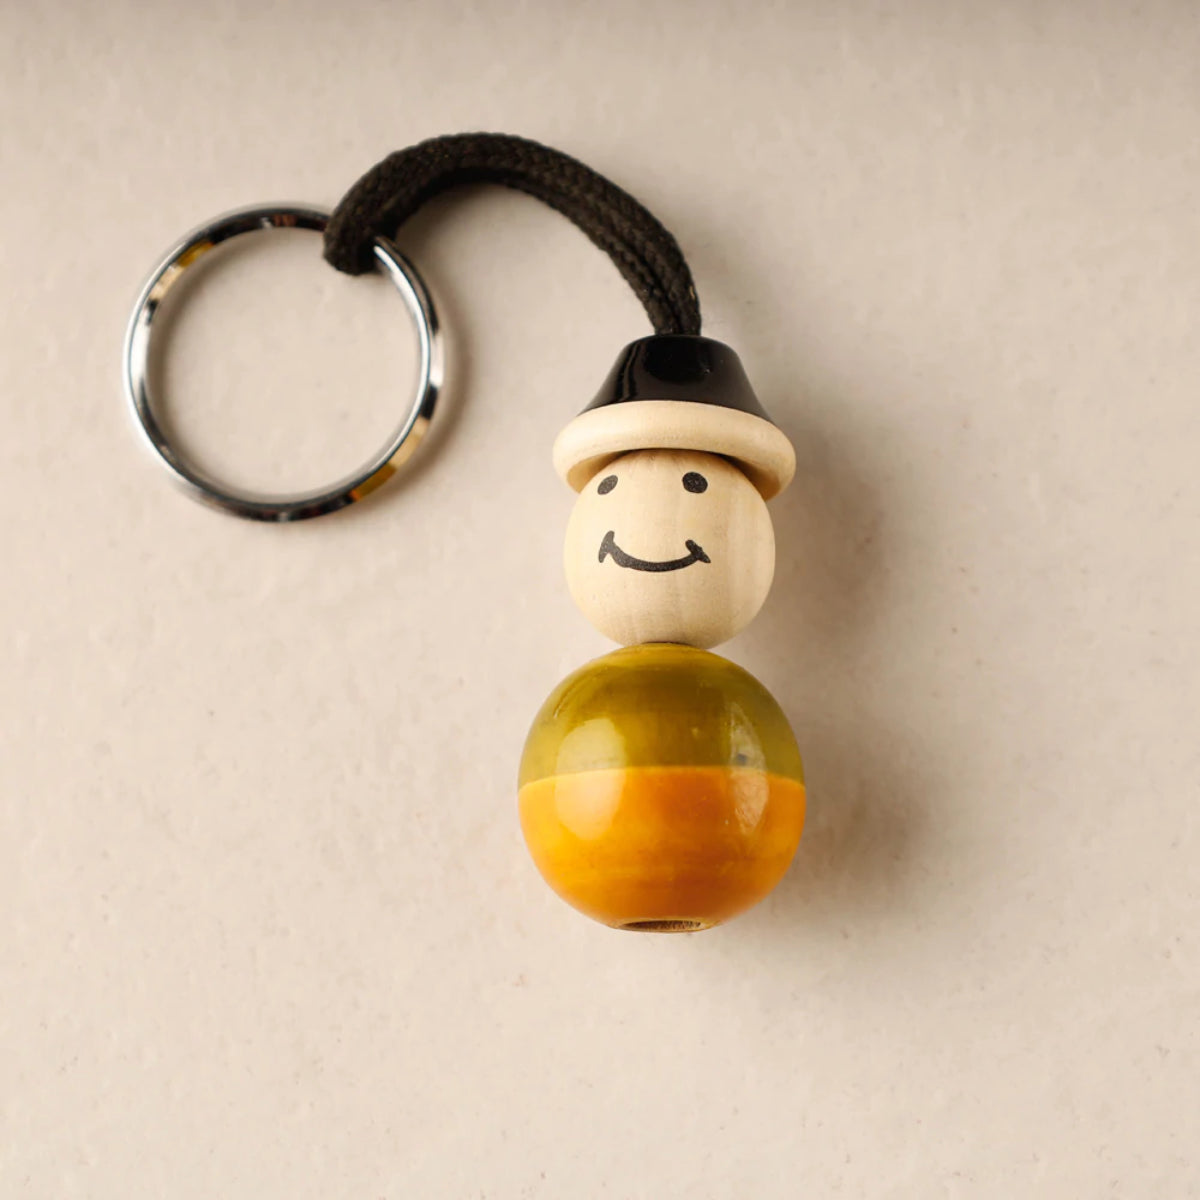 Stylish Keychains & Keyrings